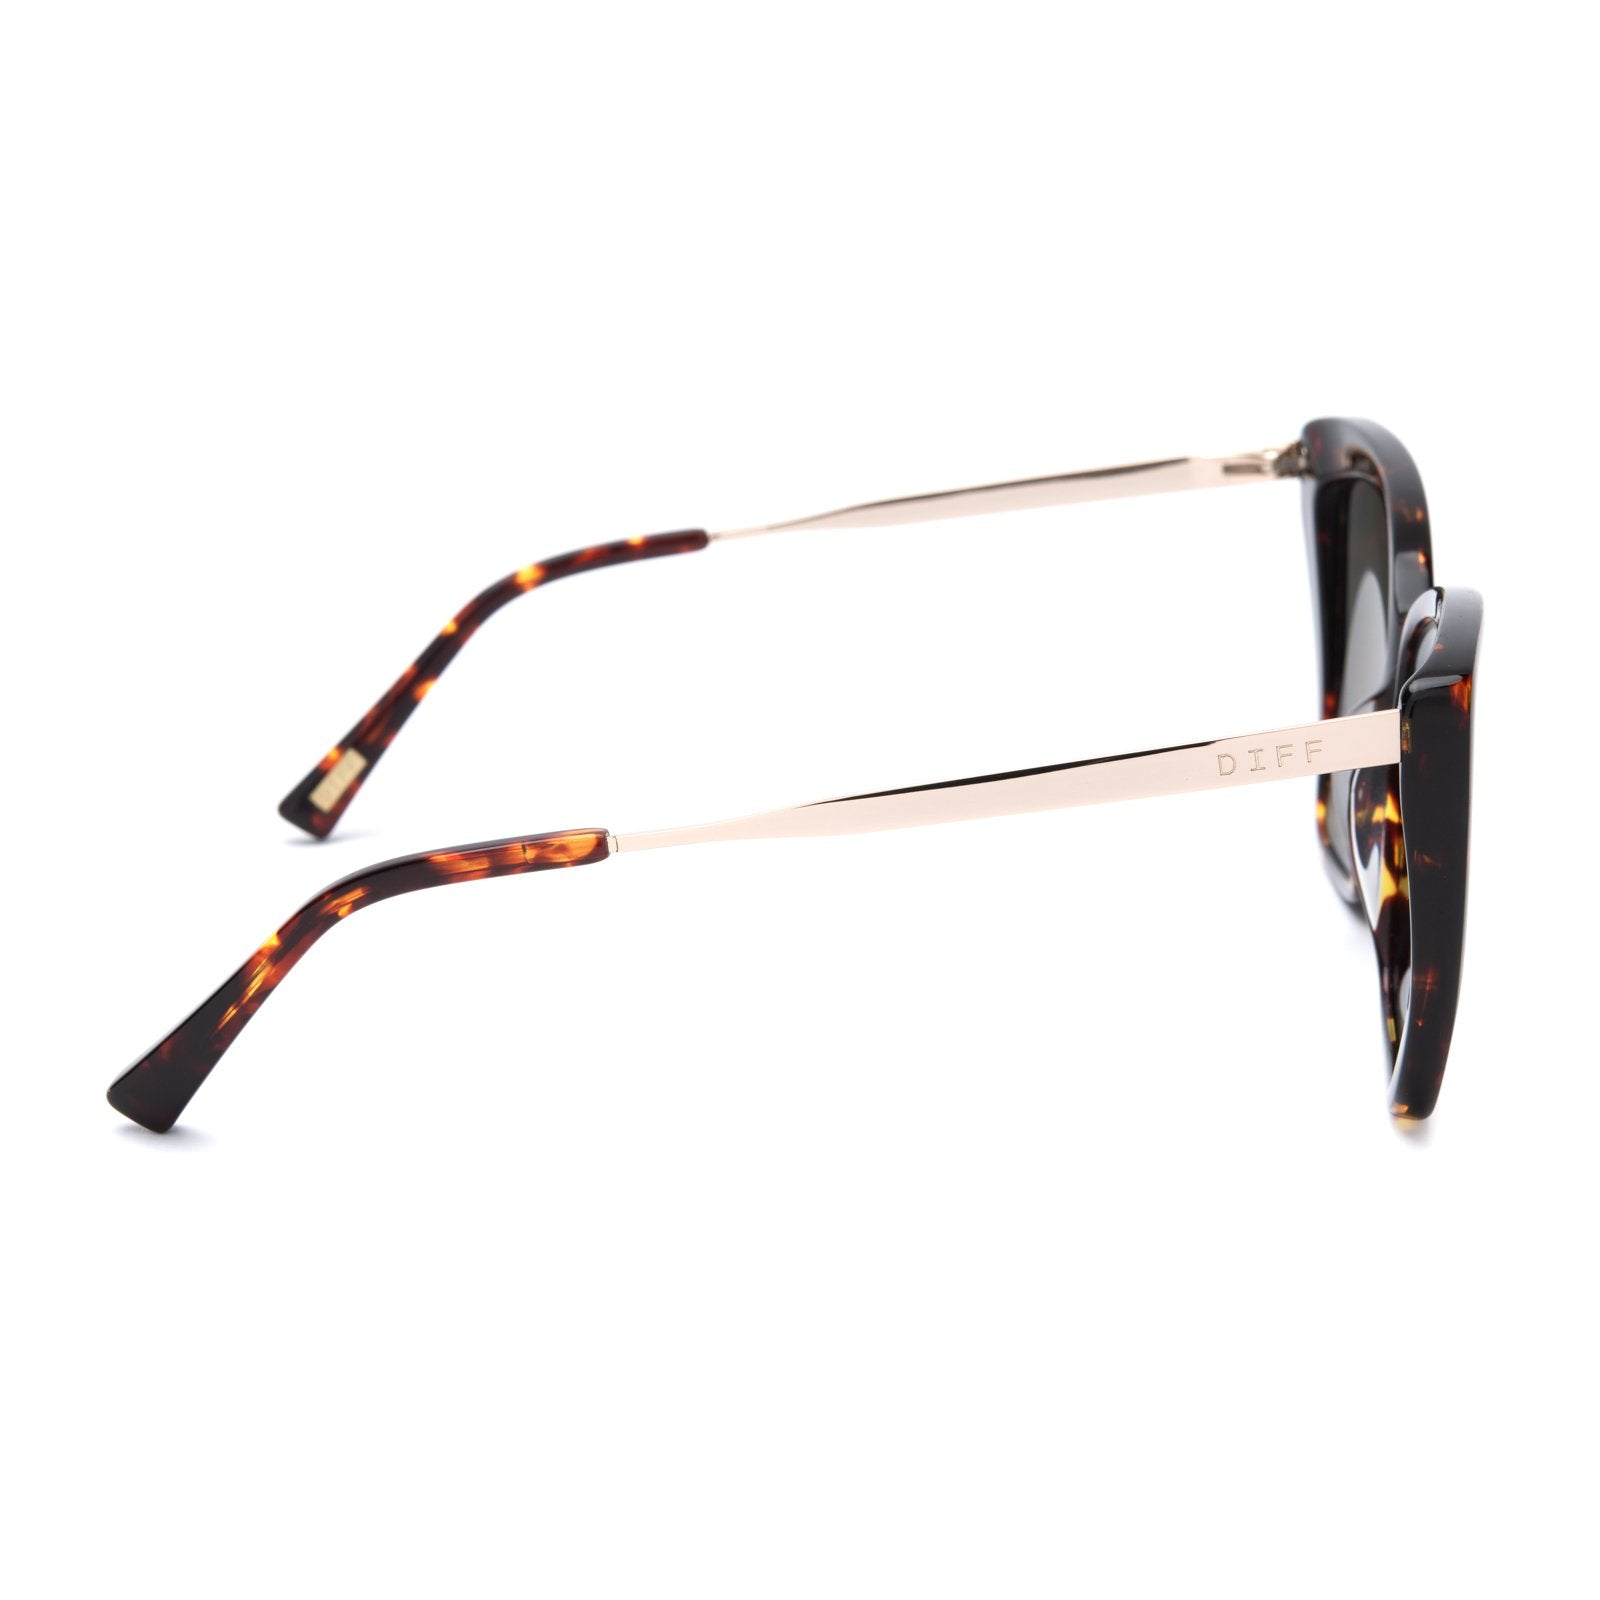 Becky II sunglasses with dark tortoise frames and gold mirror polarized lens side view